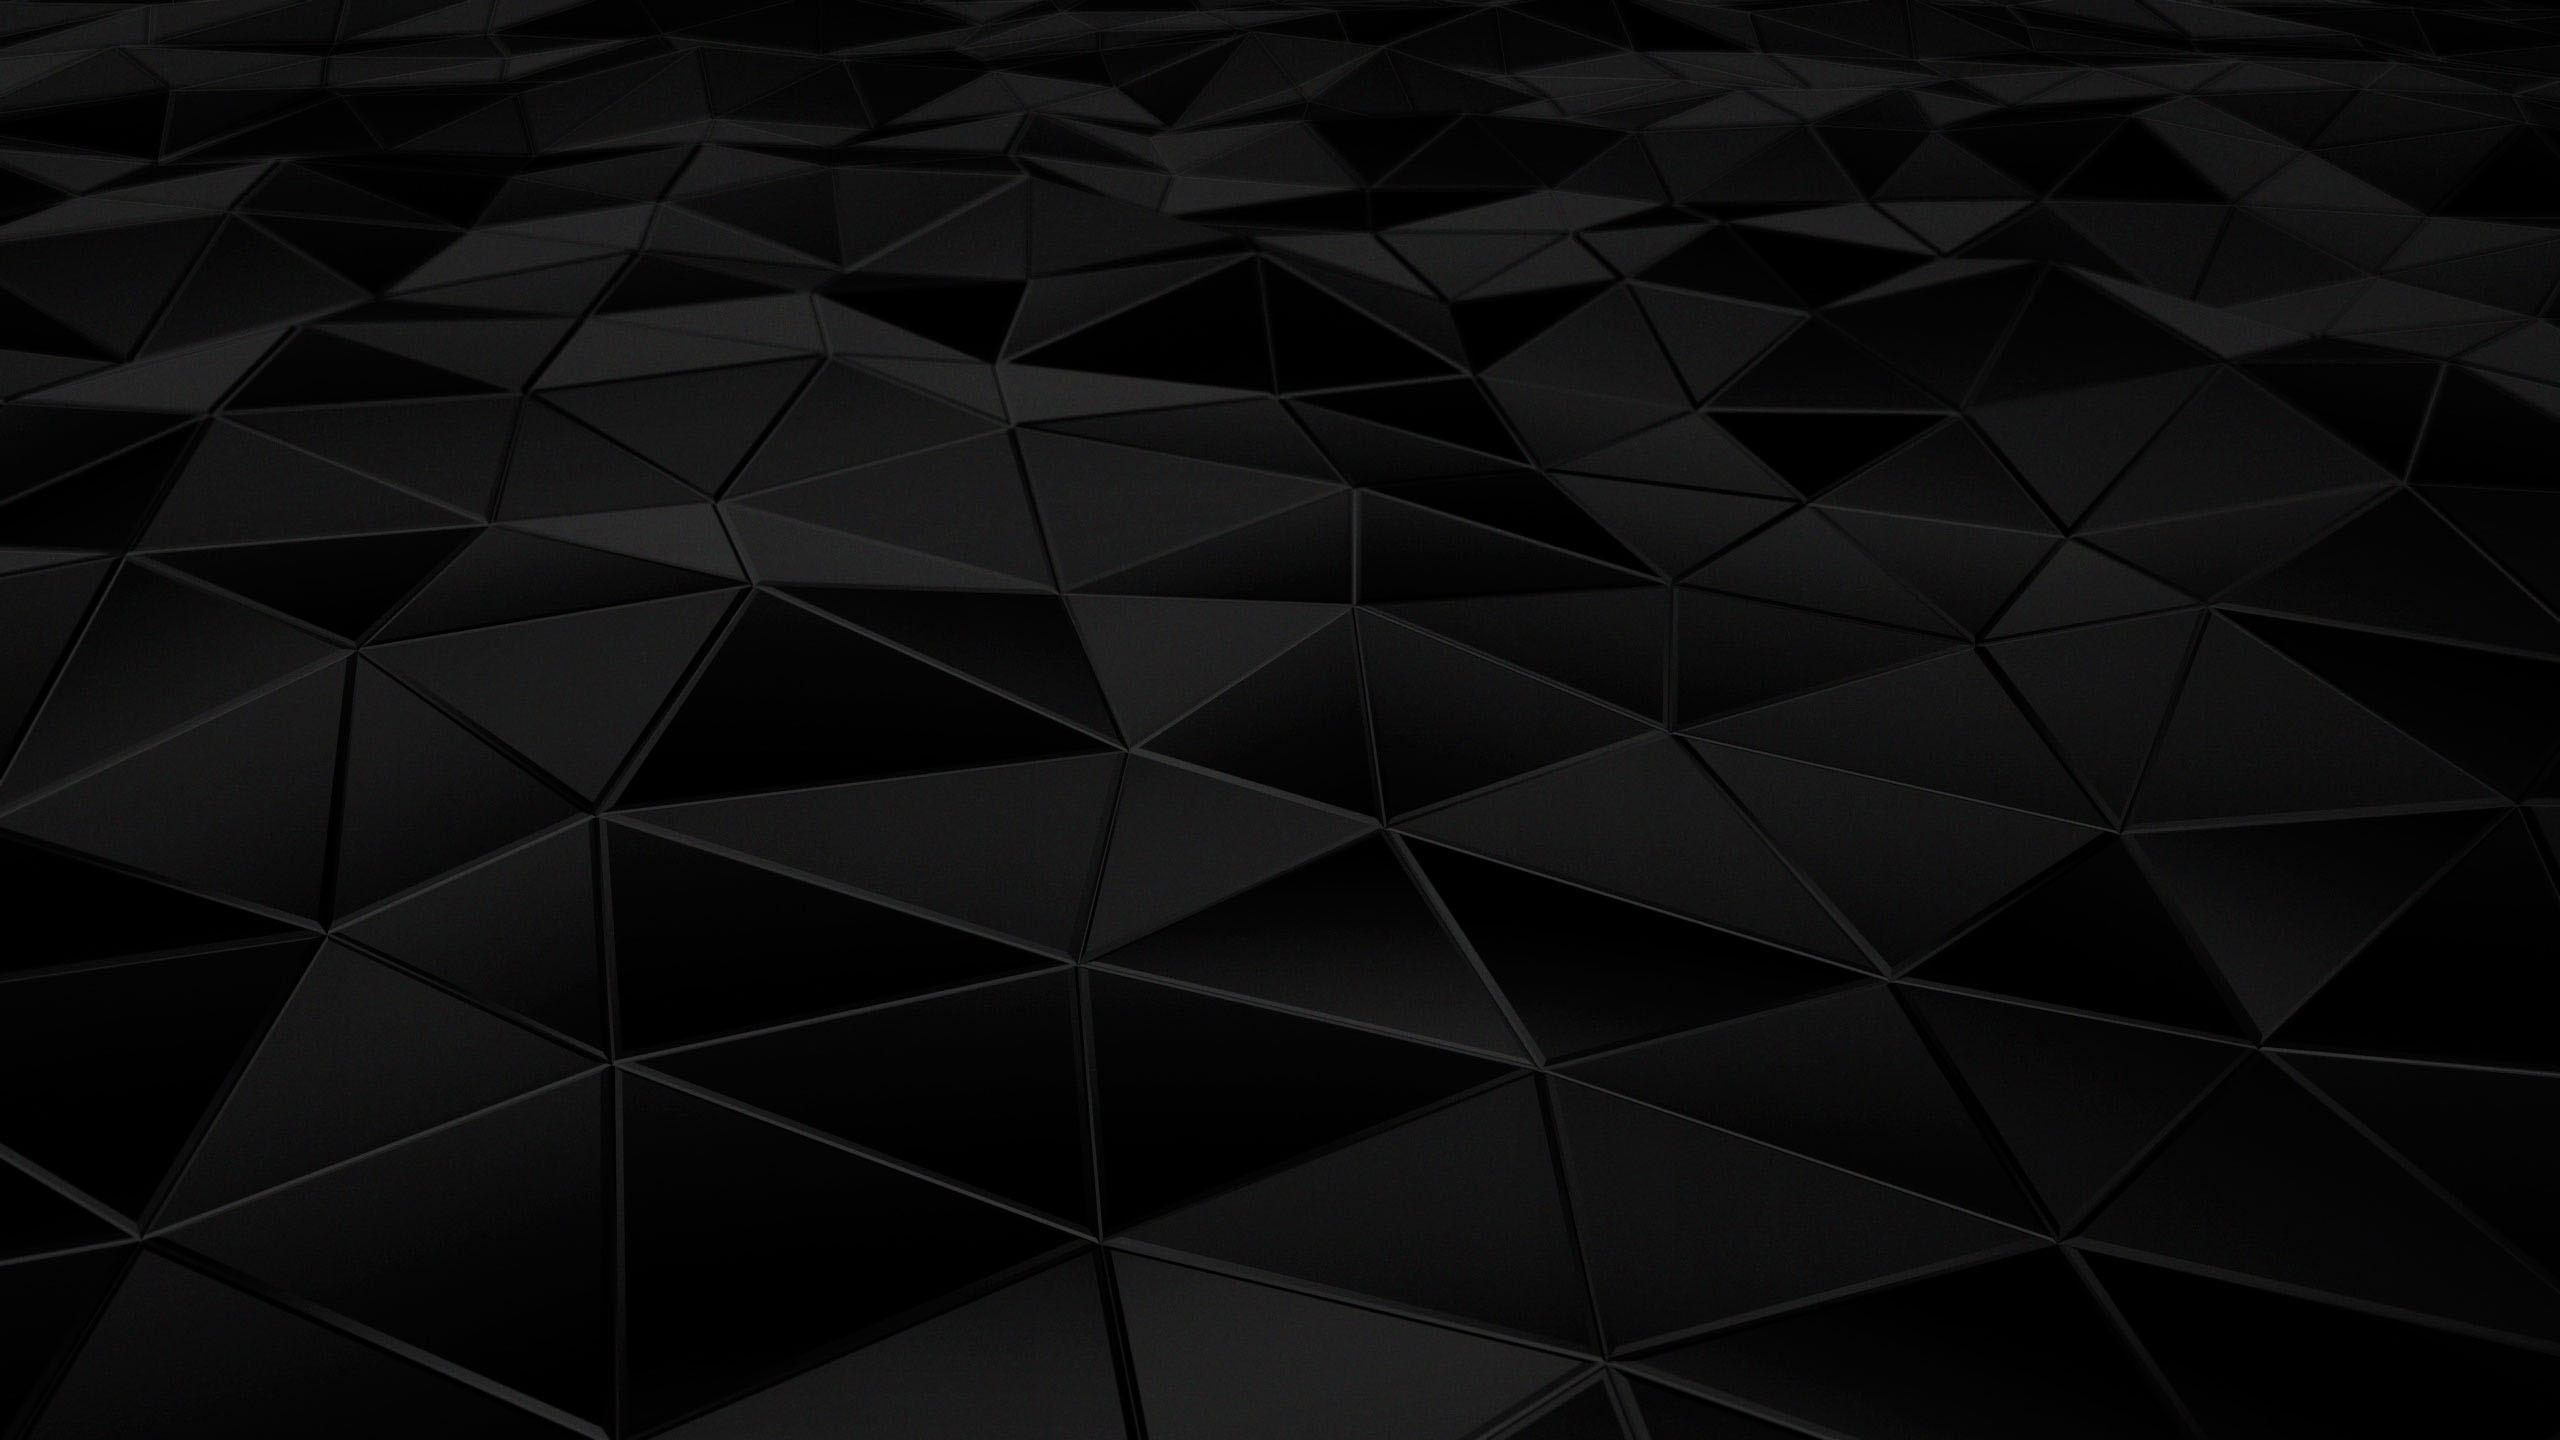 Black abstract Wallpapers Images Photos Pictures Backgrounds 2560x1440